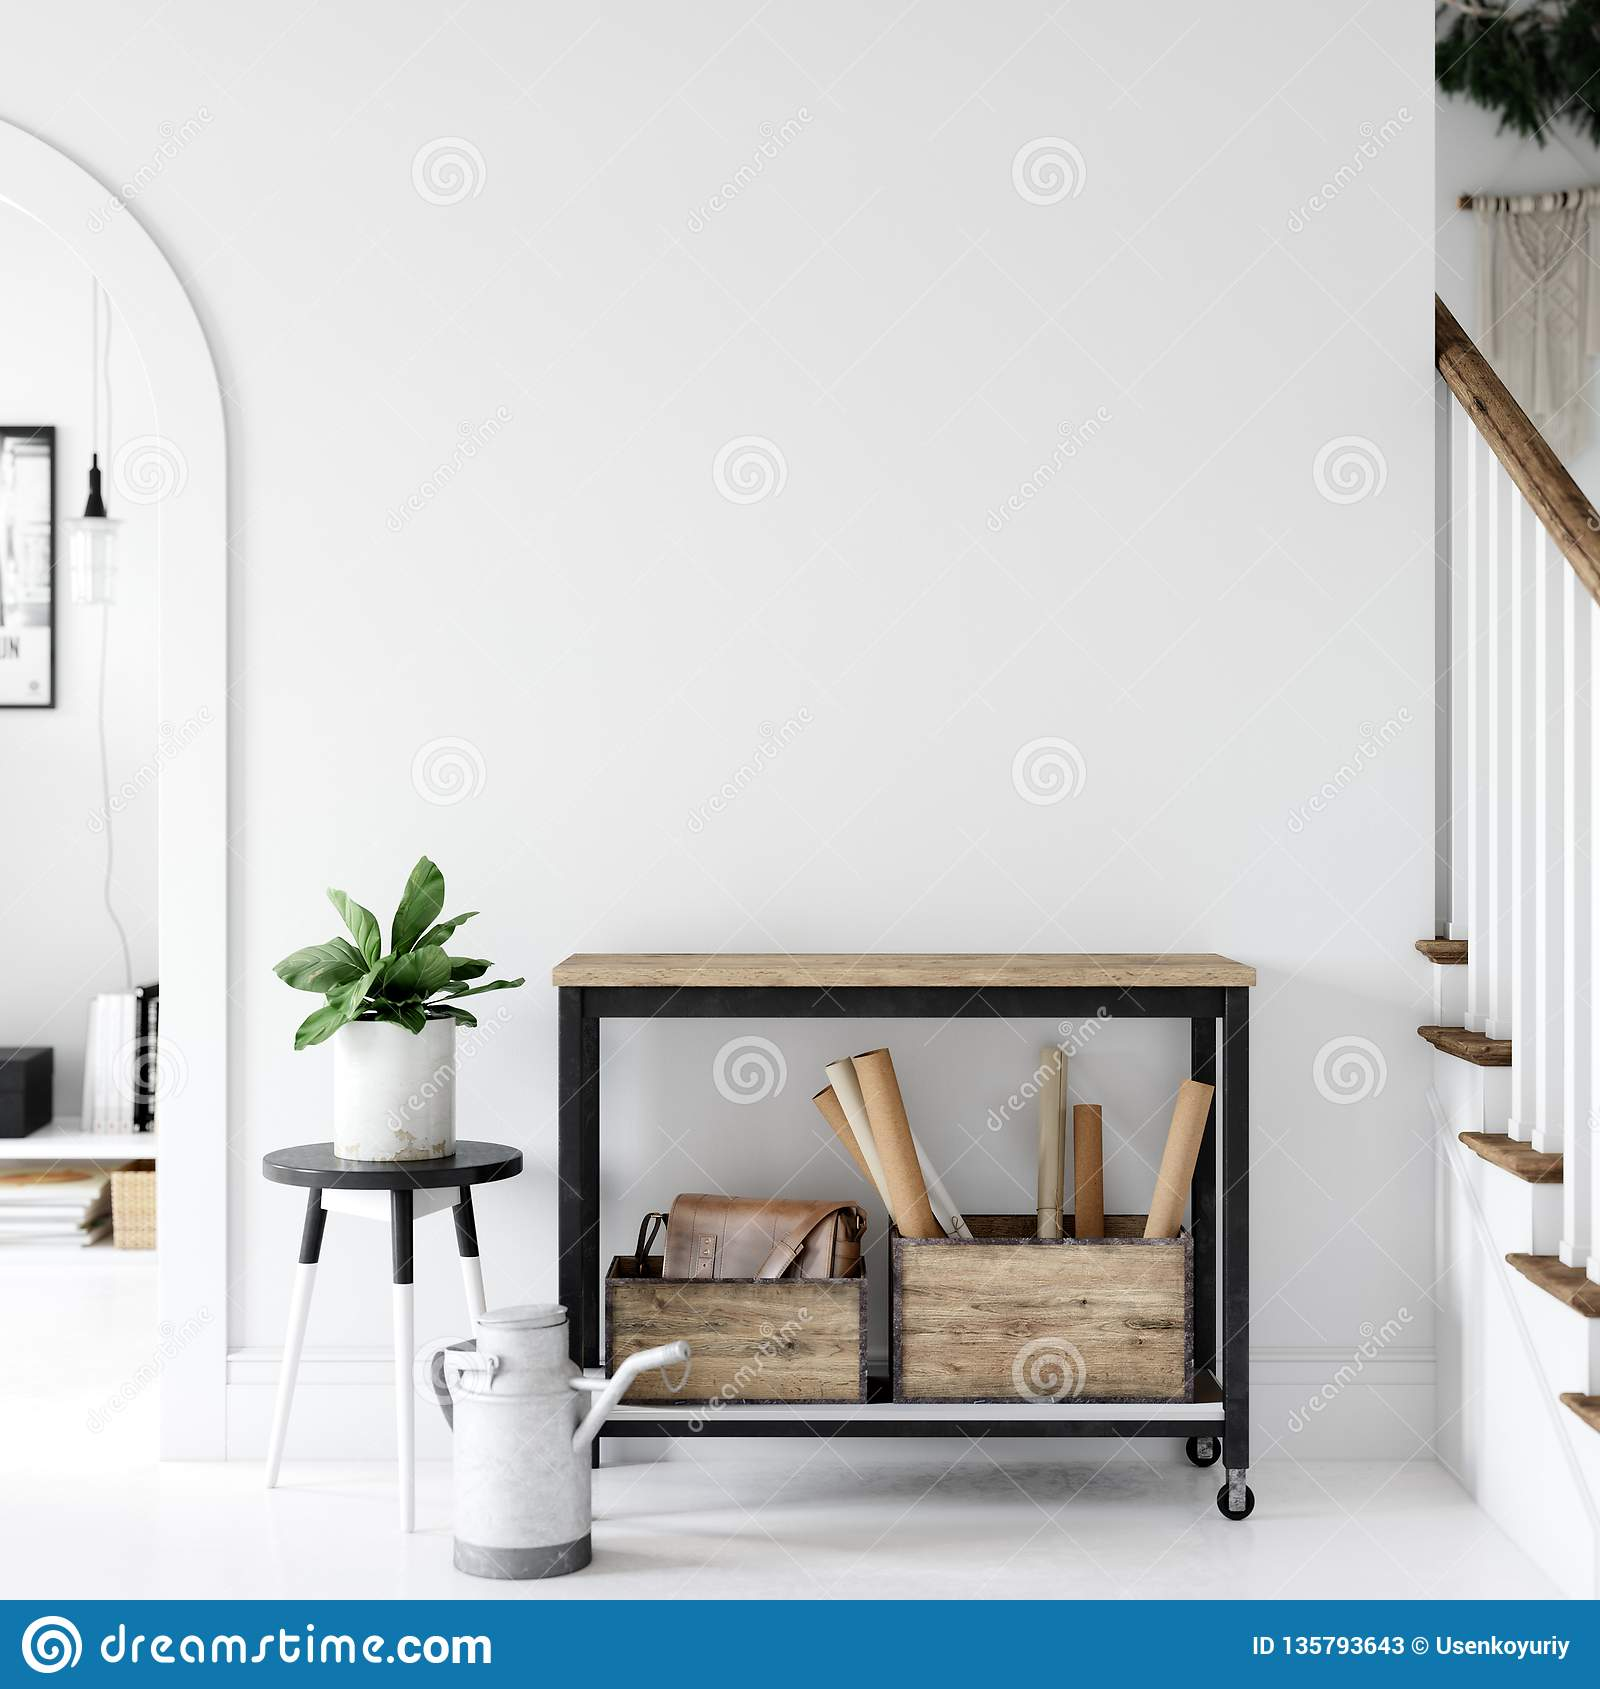 Outstanding Living Room Interior Wall Mockup Wall Art 3D Rendering Download Free Architecture Designs Pushbritishbridgeorg